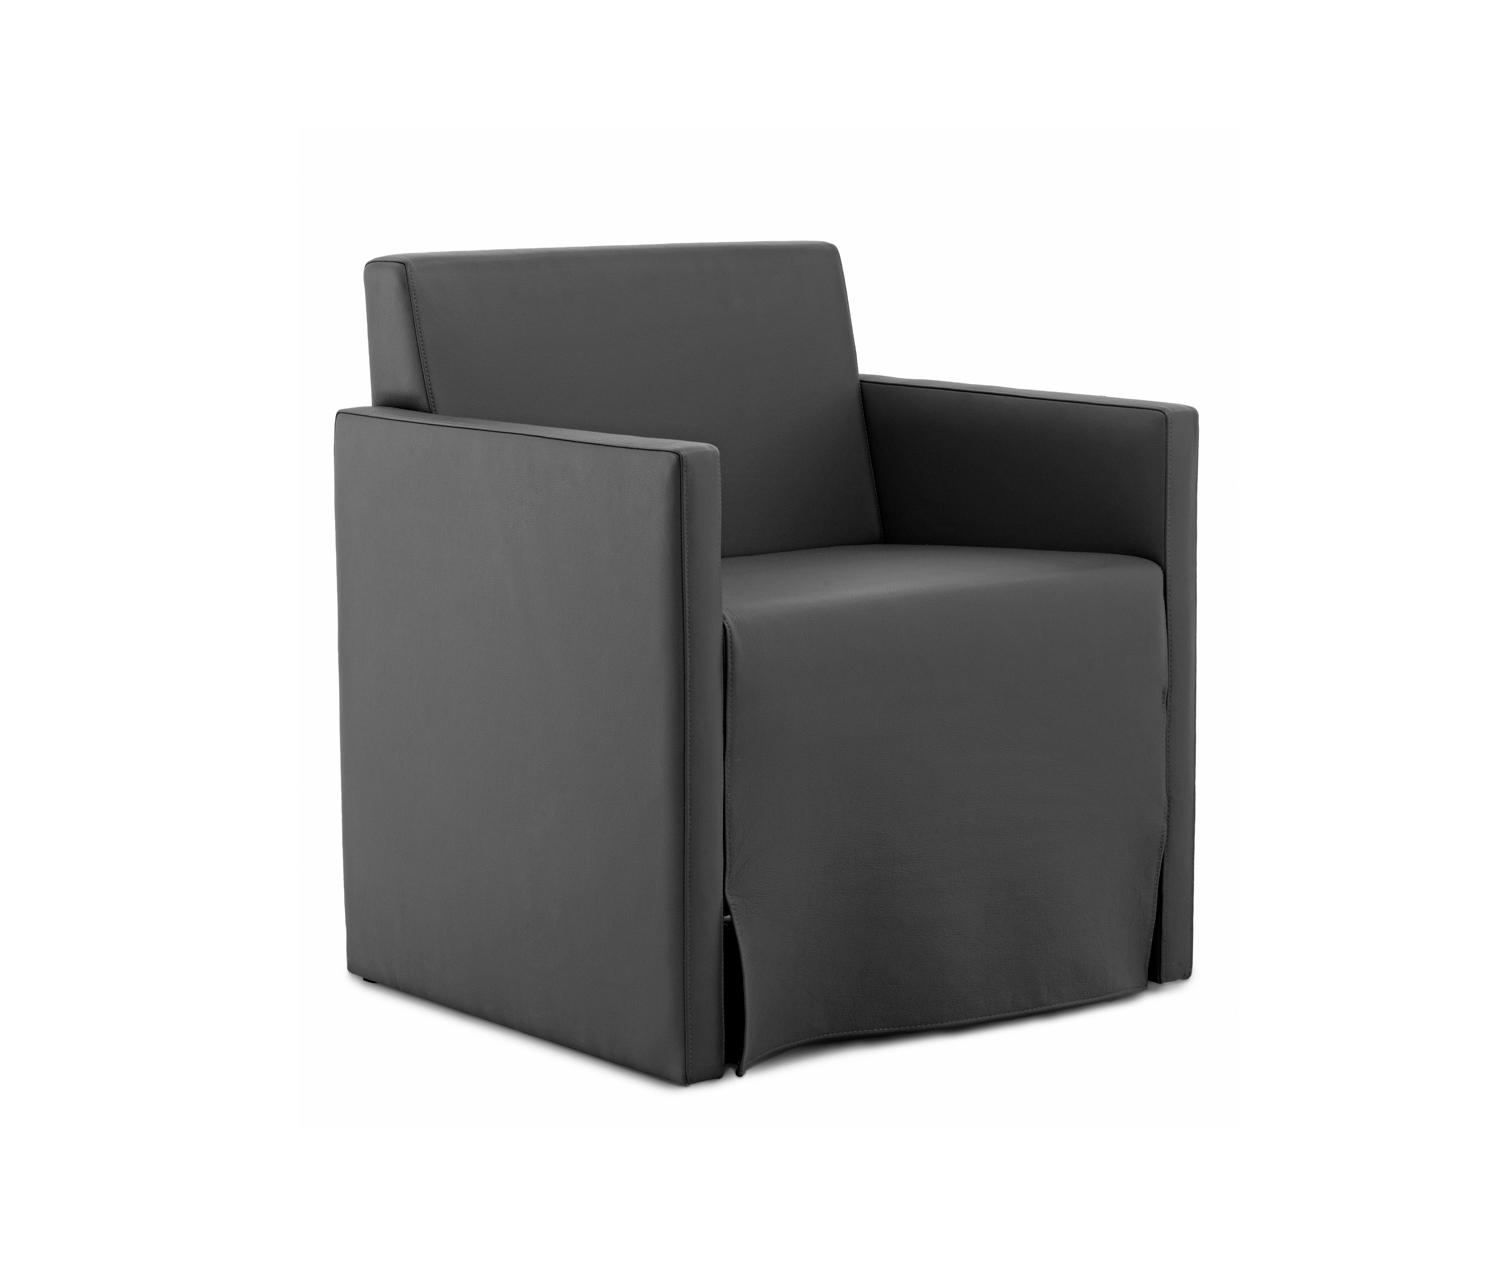 tan mini sofa conference chairs from nurus architonic. Black Bedroom Furniture Sets. Home Design Ideas